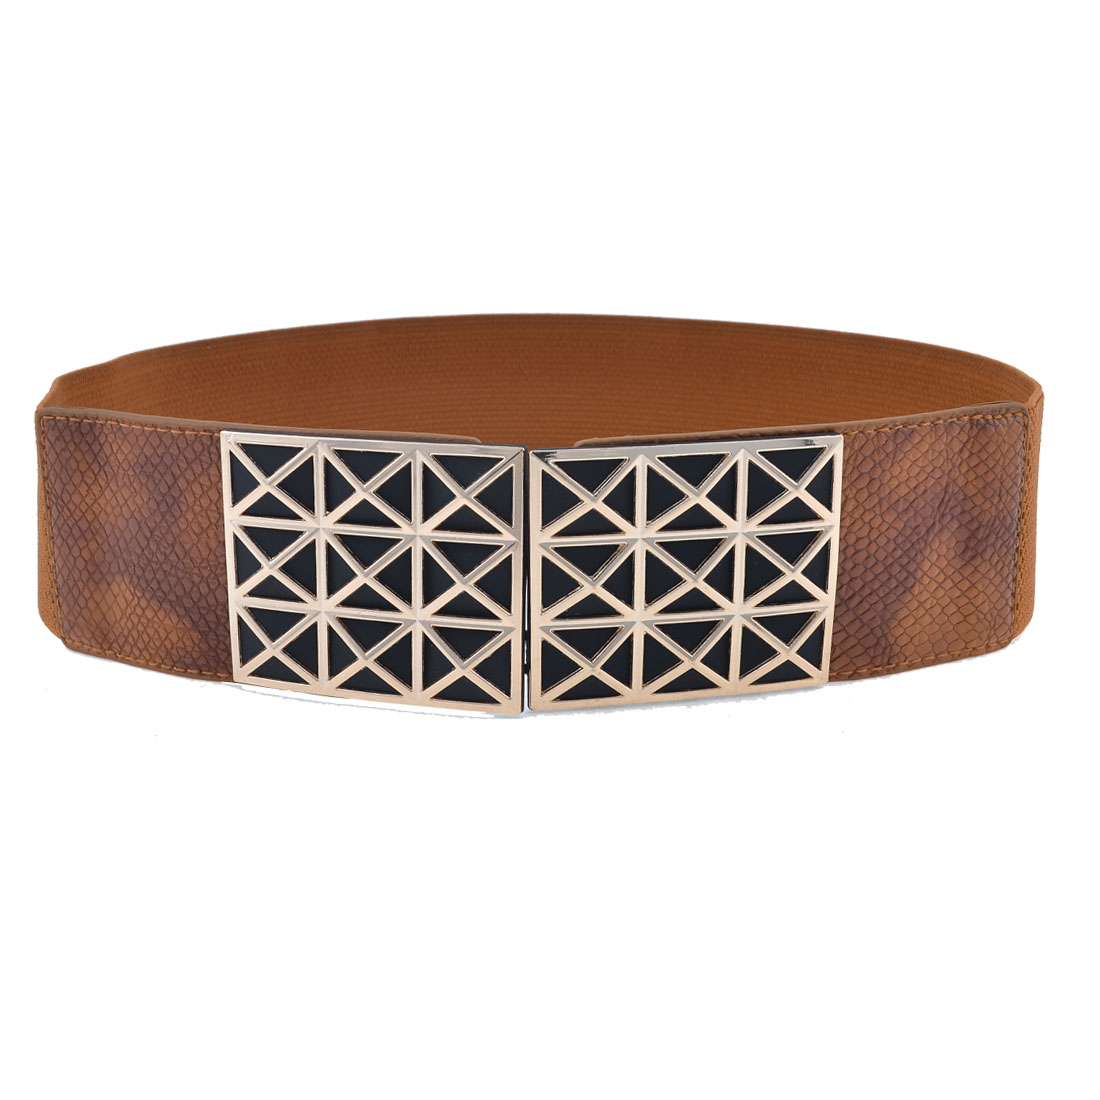 Ladies Brown Faceted Square Printed Metal Interlock Buckle Stretchy Waist Belt